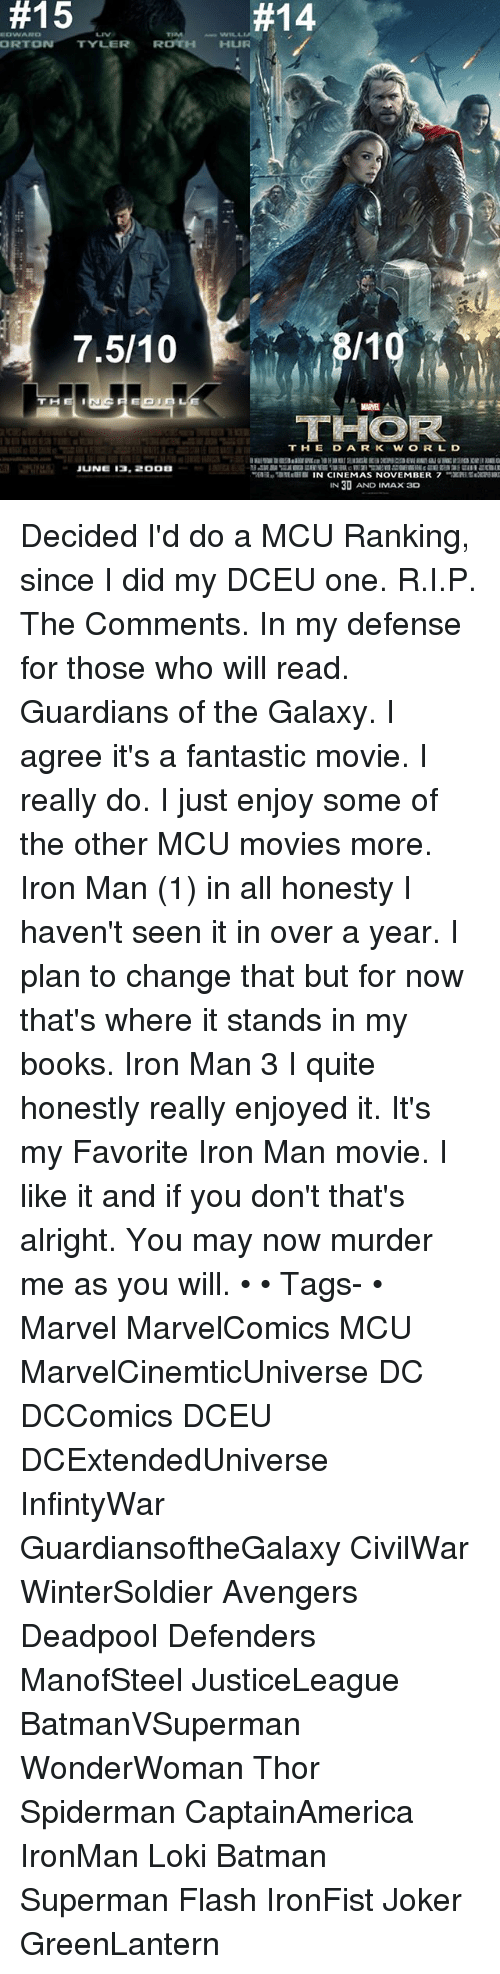 Batman, Books, and Imax:  #15  EDWARD  ORTDN  TYLER  R  7.510  THE I  JUNE B. 2ODB  THOR?  T H E D A R K W O R L D  TDN N CINEMAS NOVEMBER 7  IN 30 AND IMAX 3D Decided I'd do a MCU Ranking, since I did my DCEU one. R.I.P. The Comments. In my defense for those who will read. Guardians of the Galaxy. I agree it's a fantastic movie. I really do. I just enjoy some of the other MCU movies more. Iron Man (1) in all honesty I haven't seen it in over a year. I plan to change that but for now that's where it stands in my books. Iron Man 3 I quite honestly really enjoyed it. It's my Favorite Iron Man movie. I like it and if you don't that's alright. You may now murder me as you will. • • Tags- • Marvel MarvelComics MCU MarvelCinemticUniverse DC DCComics DCEU DCExtendedUniverse InfintyWar GuardiansoftheGalaxy CivilWar WinterSoldier Avengers Deadpool Defenders ManofSteel JusticeLeague BatmanVSuperman WonderWoman Thor Spiderman CaptainAmerica IronMan Loki Batman Superman Flash IronFist Joker GreenLantern